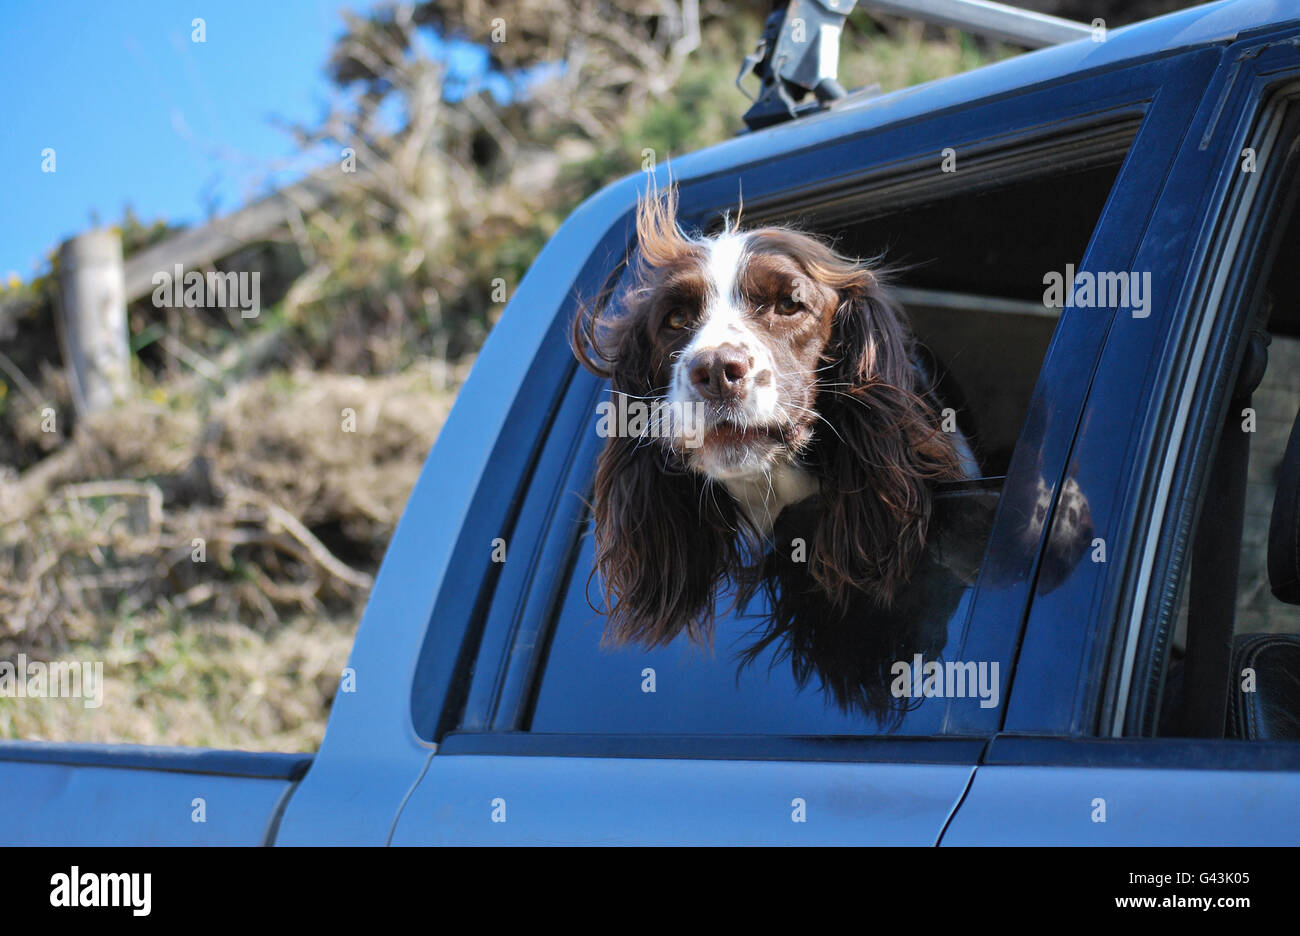 Springer Spaniel dog looking out a car window - Stock Image